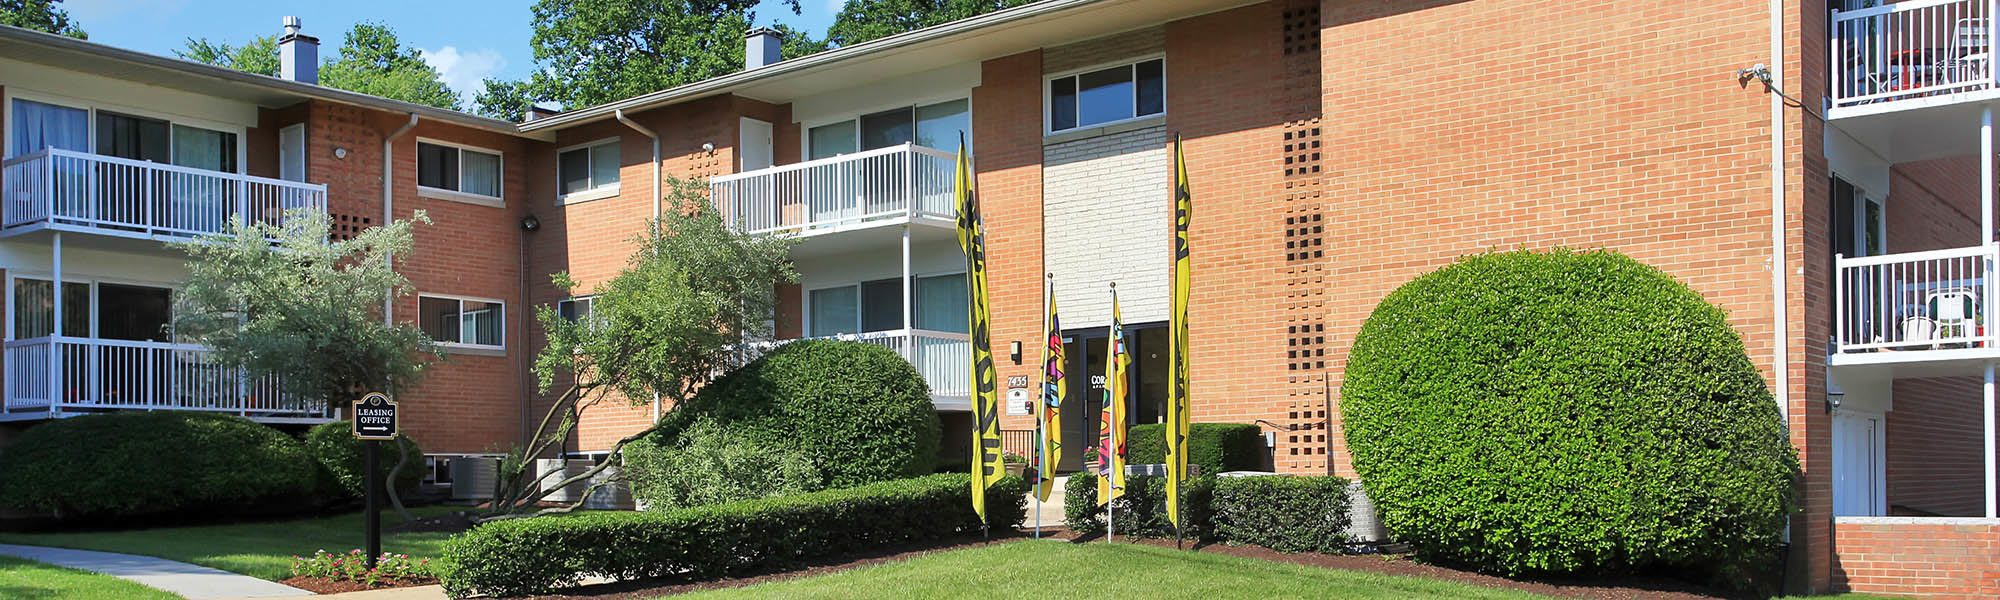 Apply to live at our apartments in Falls Church